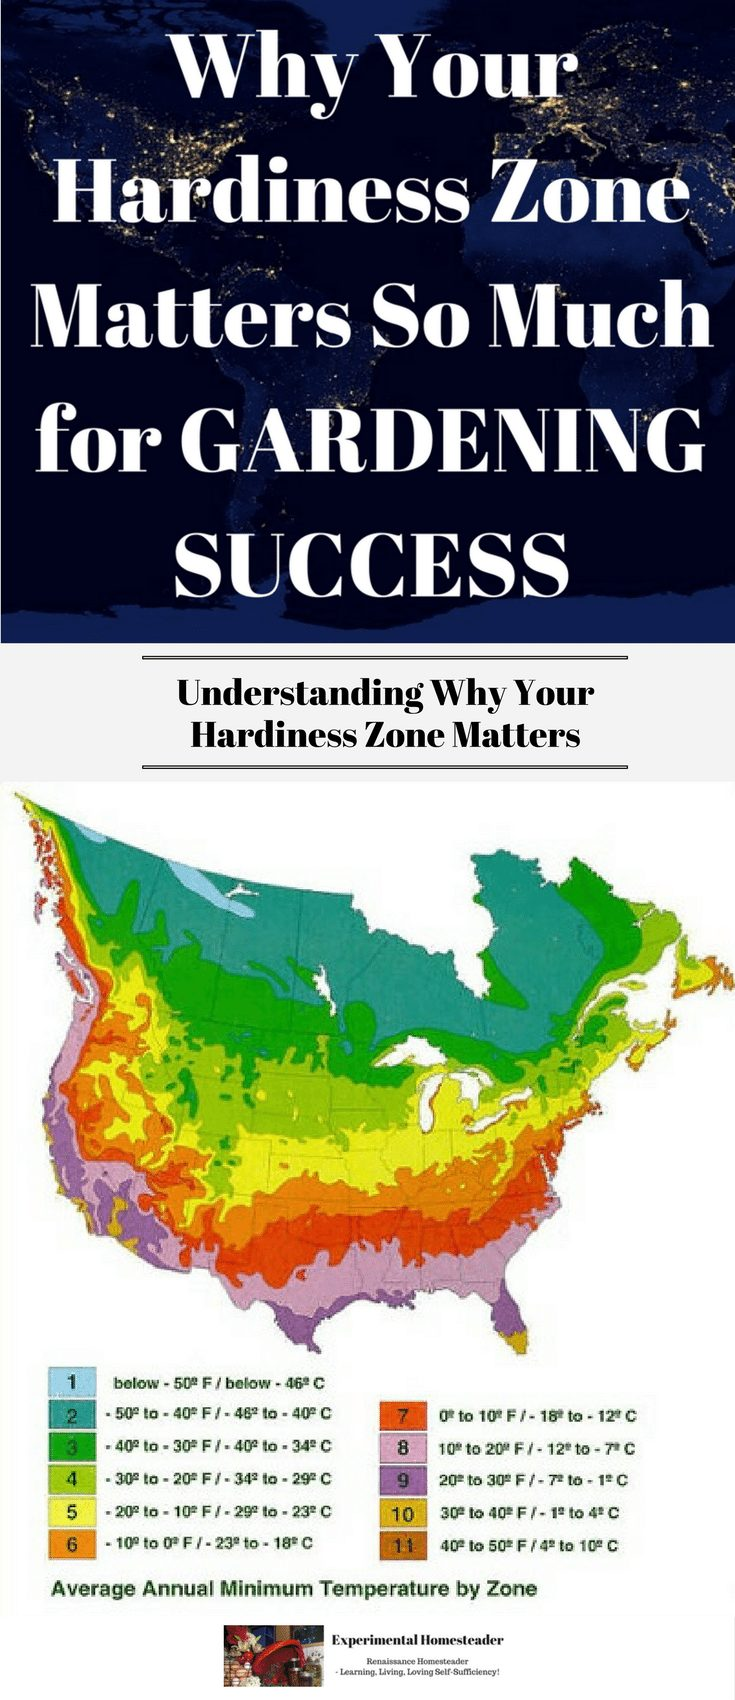 Understanding Why Your Hardiness Zone Matters